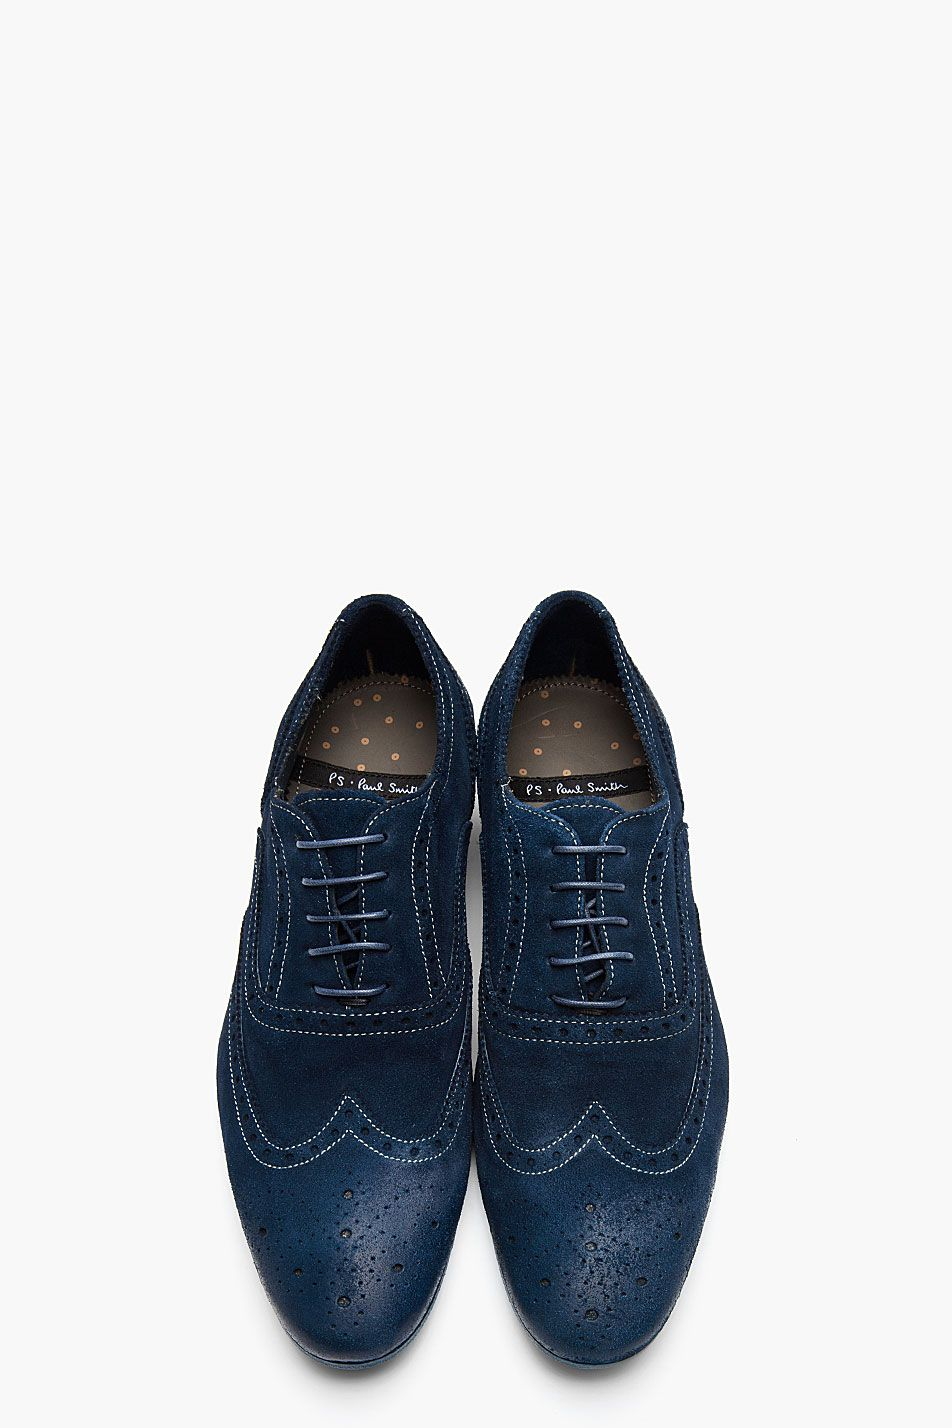 pretty nice a835c d82e6 PS PAUL SMITH Navy Dip Dyed Suede Distressed Wingtip Miller ...